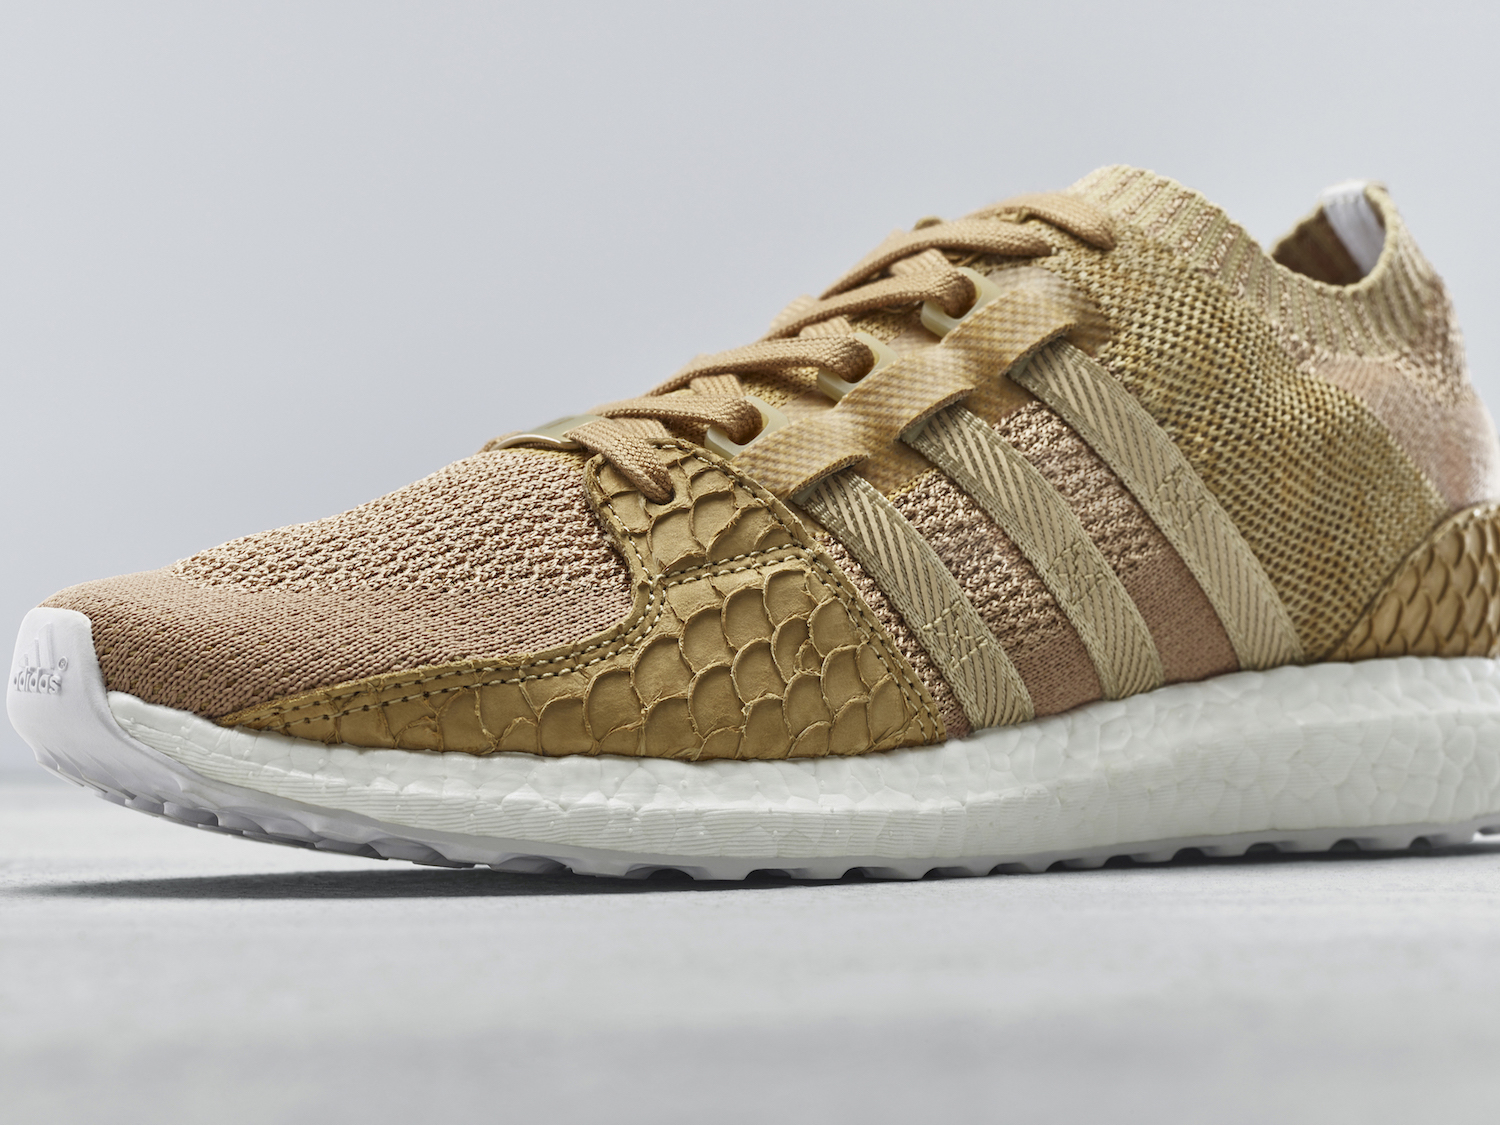 new concept d78e5 4eef7 adidas Unveils the King Push EQT Support Ultra PK 'Bodega ...